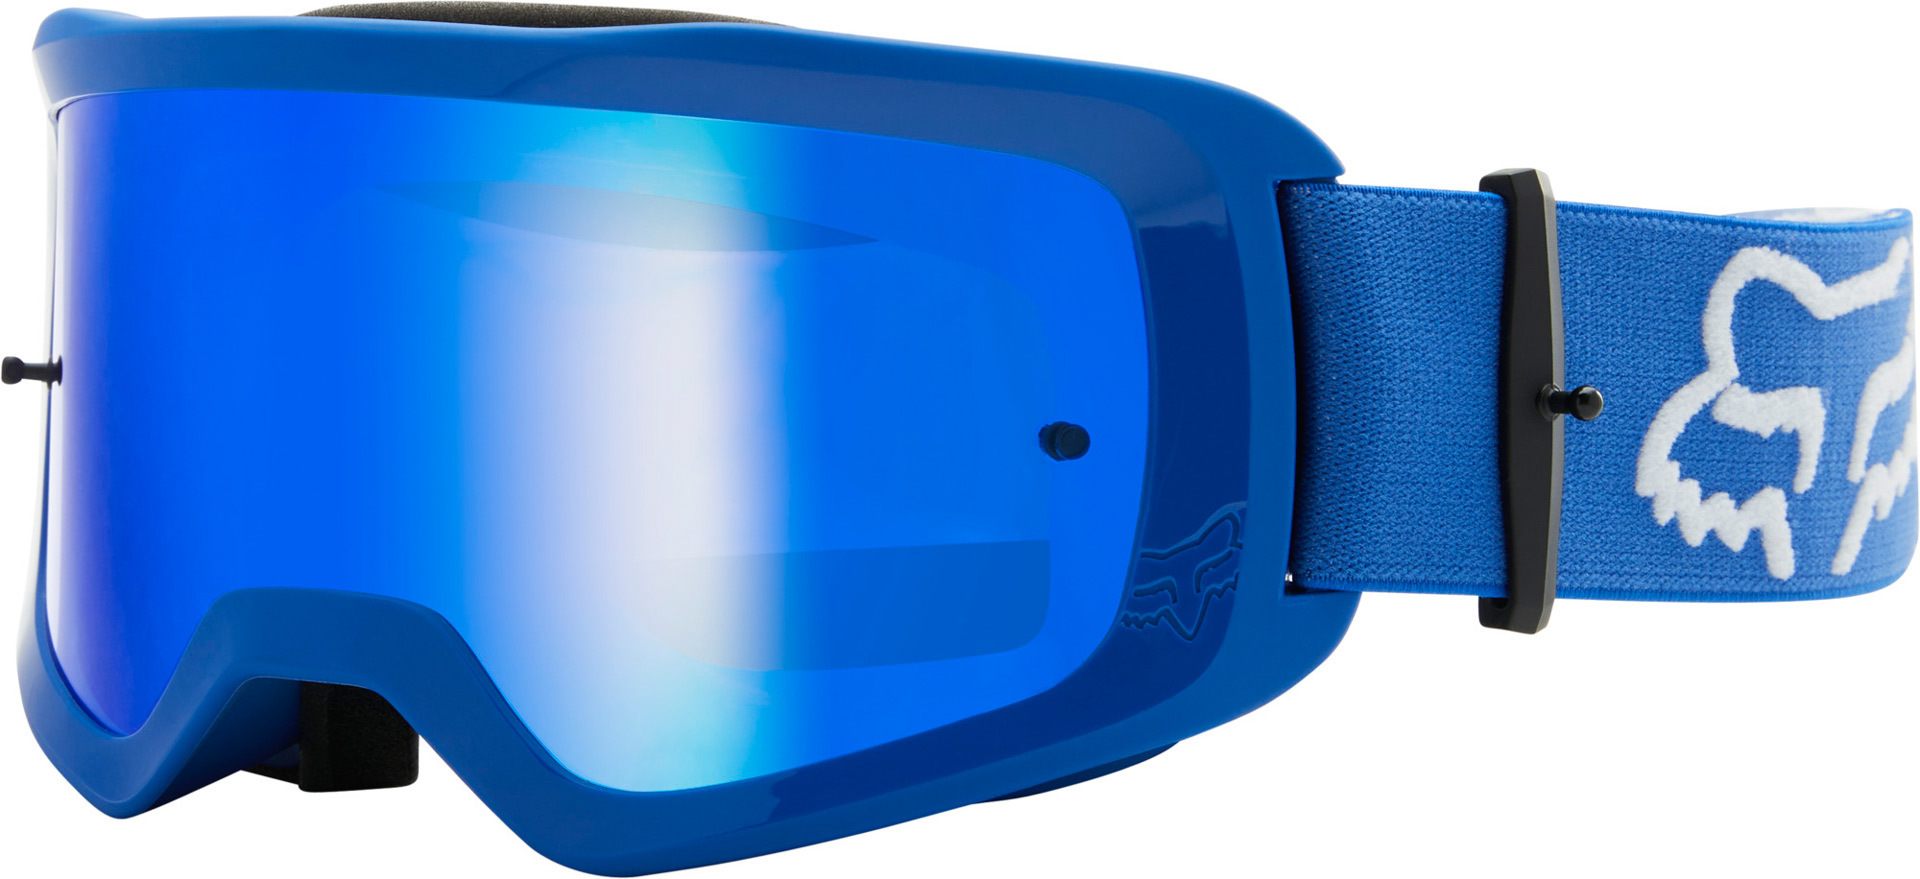 FOX Main Stray Spark Motocross Brille, blau, blau